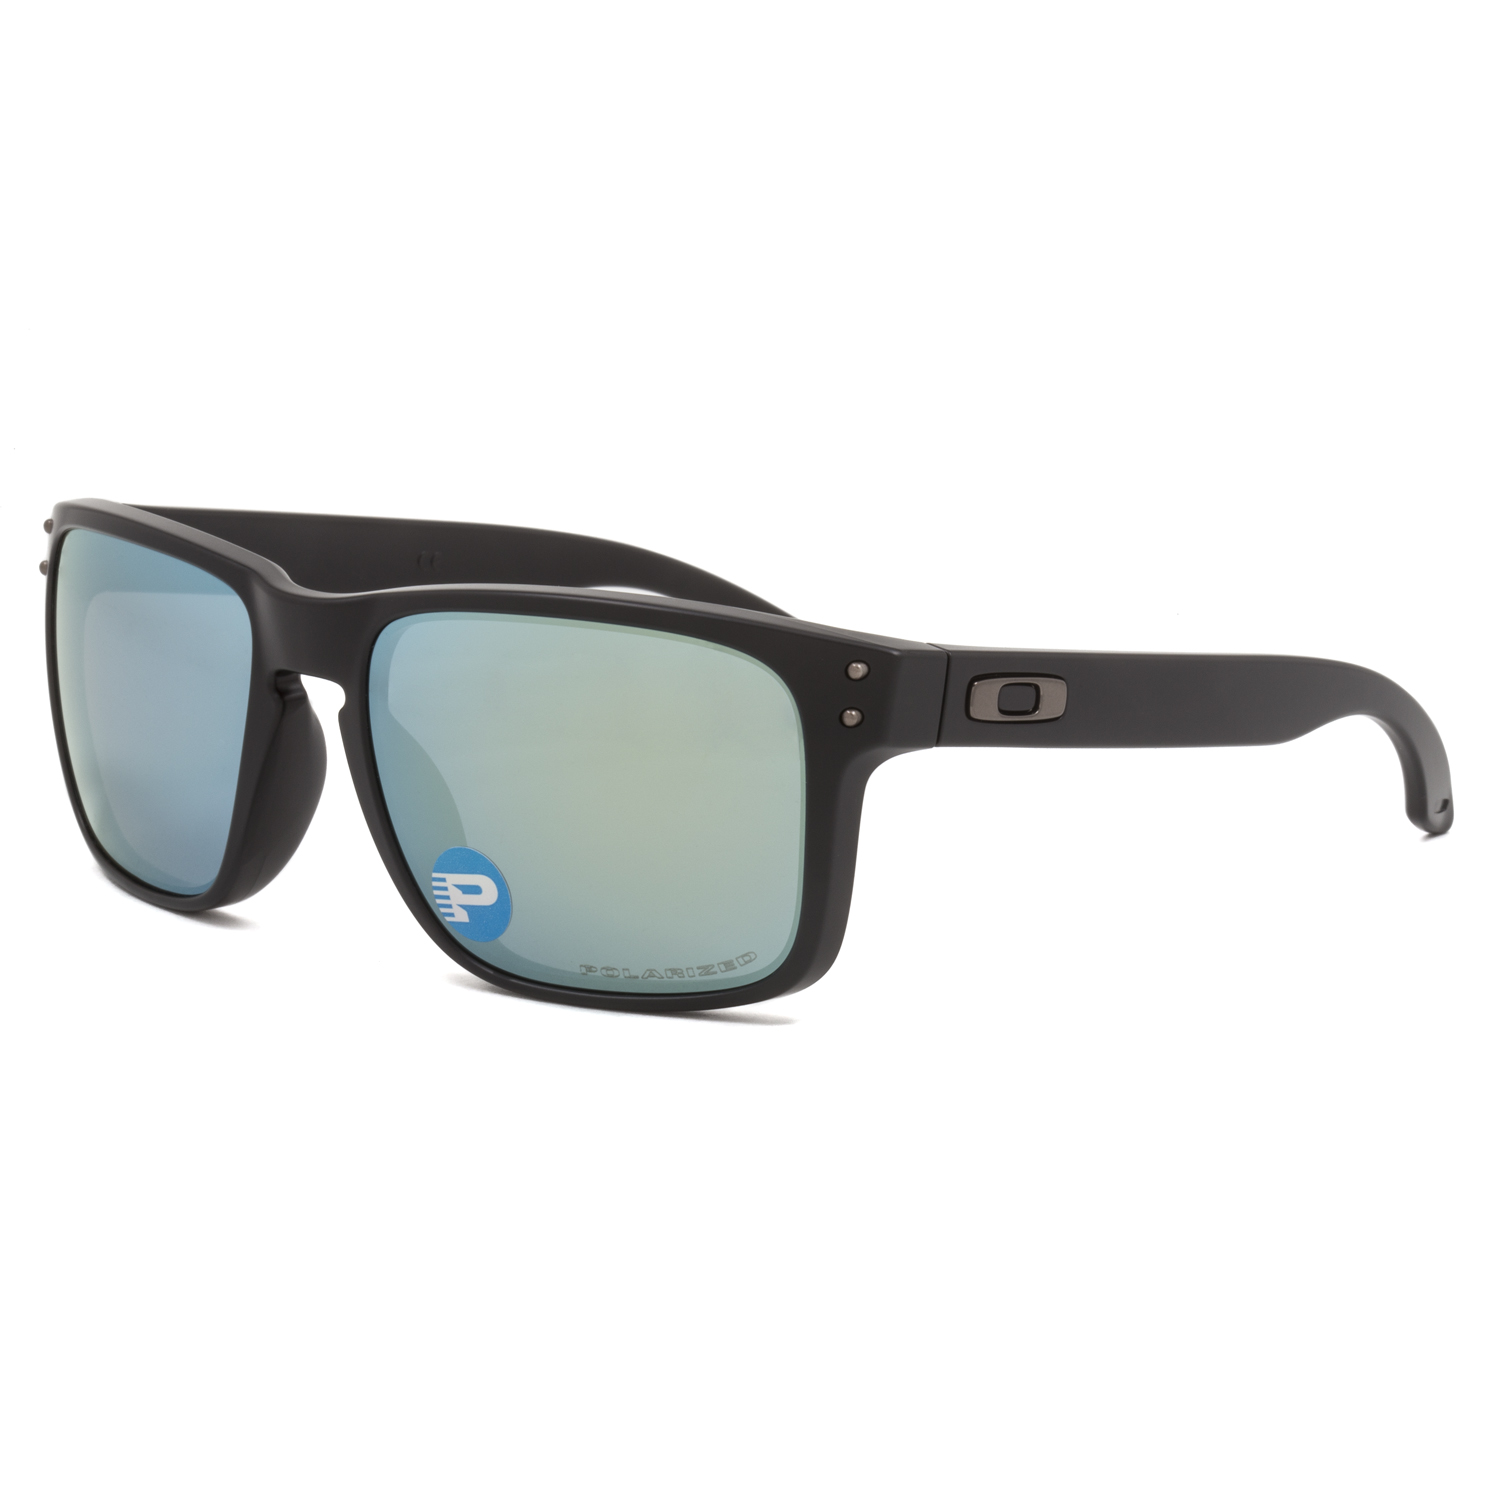 oakley matte black holbrook ci2f  Image is loading Oakley-Holbrook-Sunglasses-OO9102-50-Matte-Black-Emerald